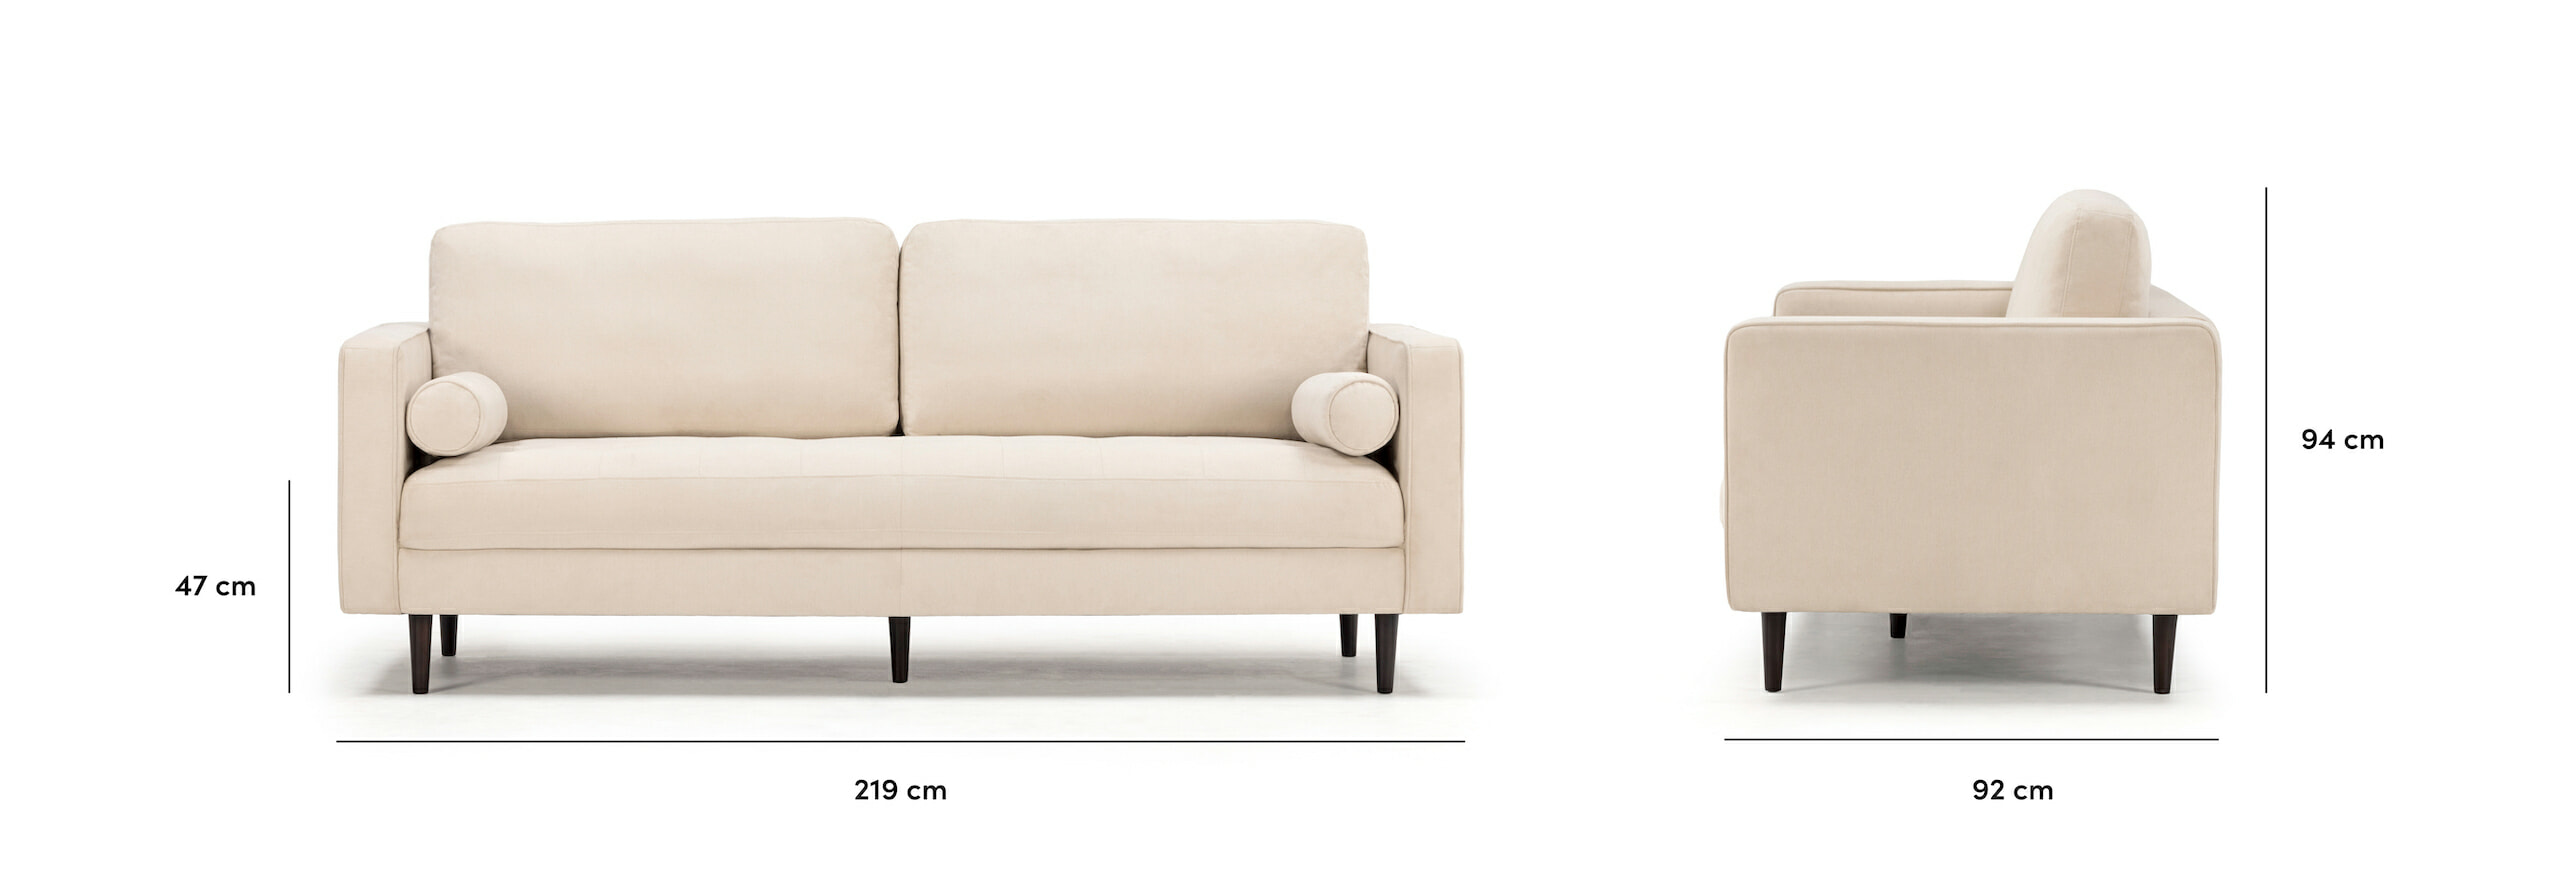 Soho sofa in ivory with dimensions